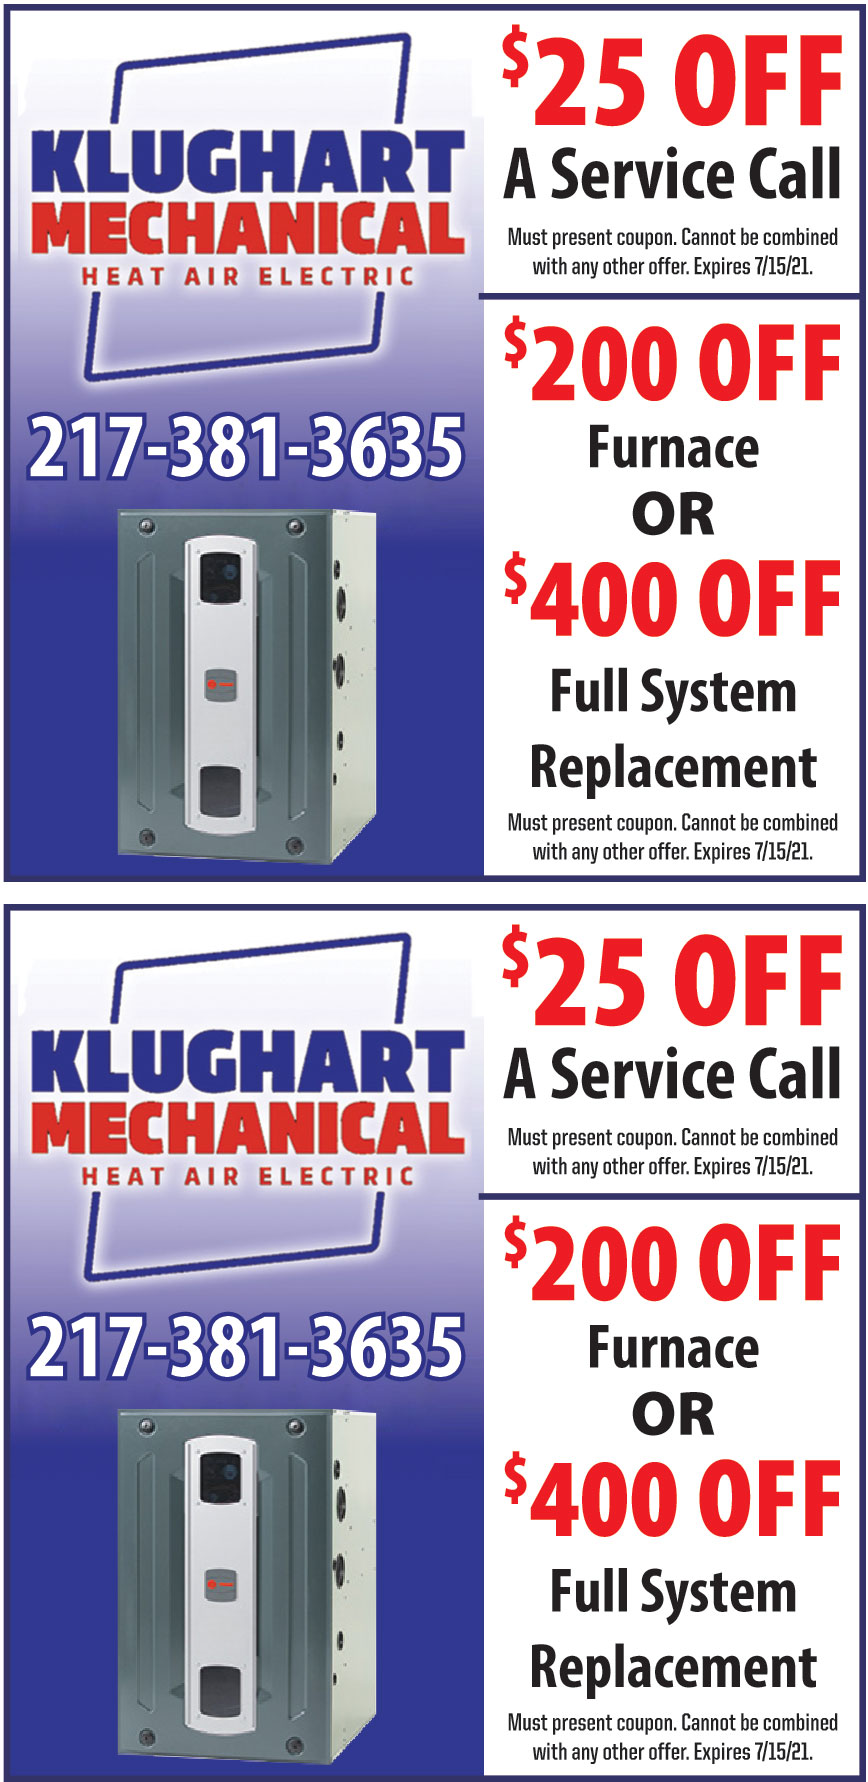 KLUGHART HEATING AND AIR